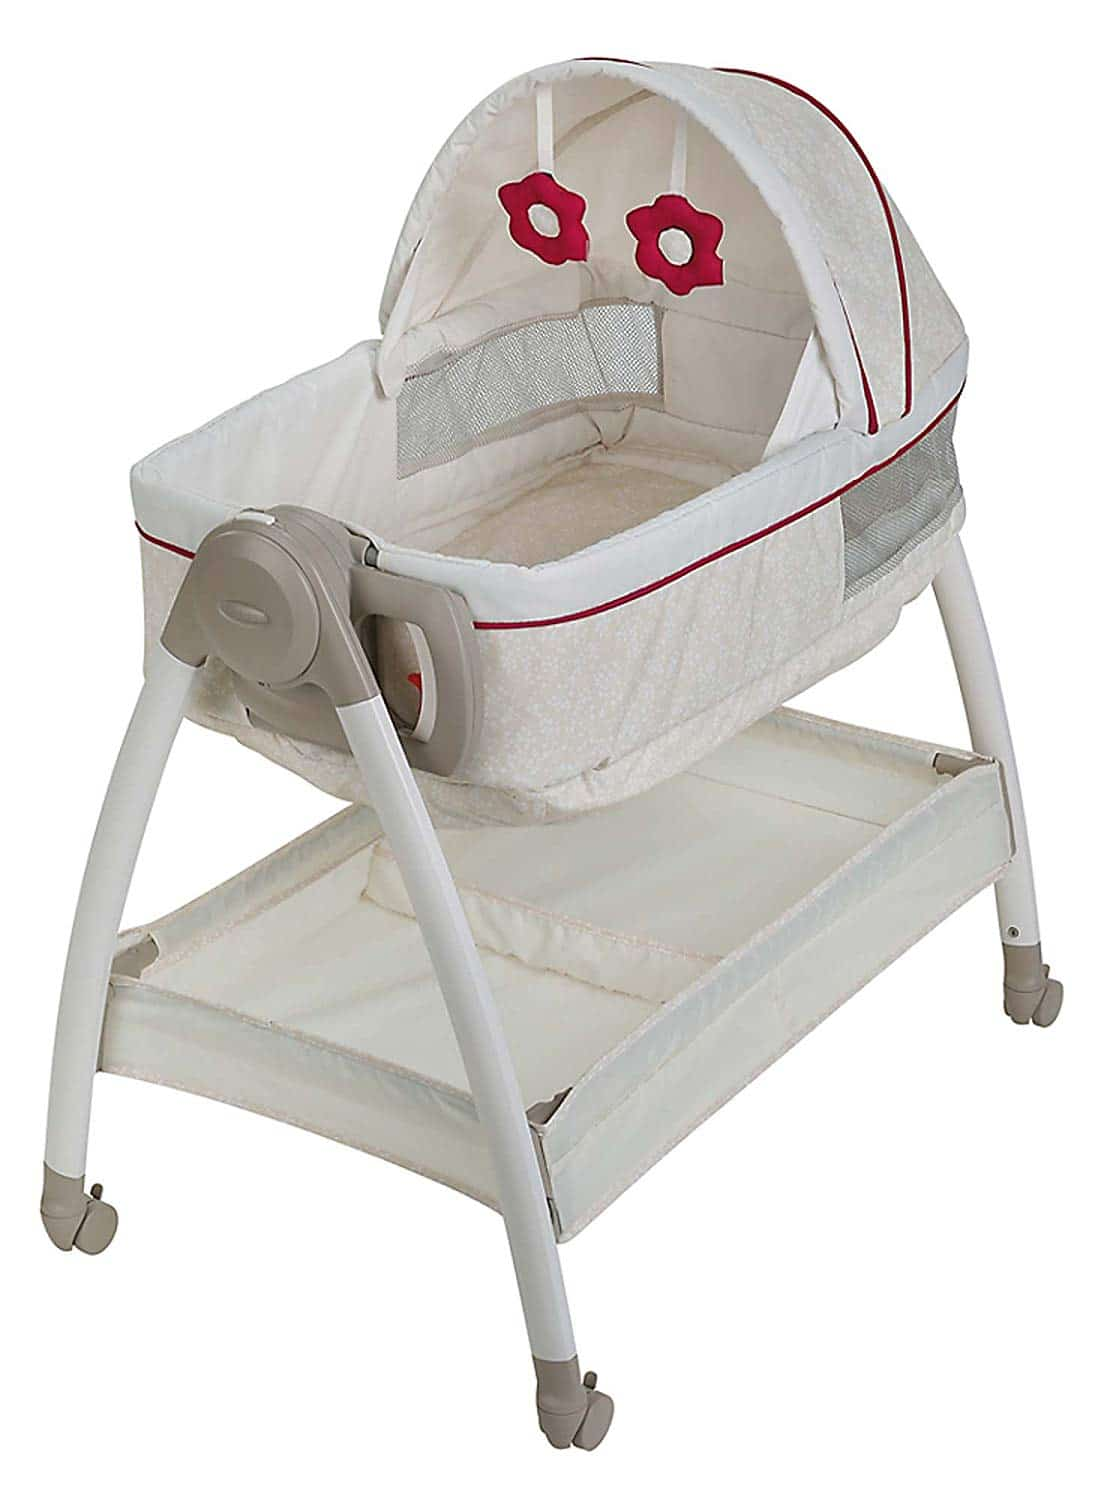 Newborn Bassinet Best The 10 Best Baby Bassinets To Buy 2020 Littleonemag